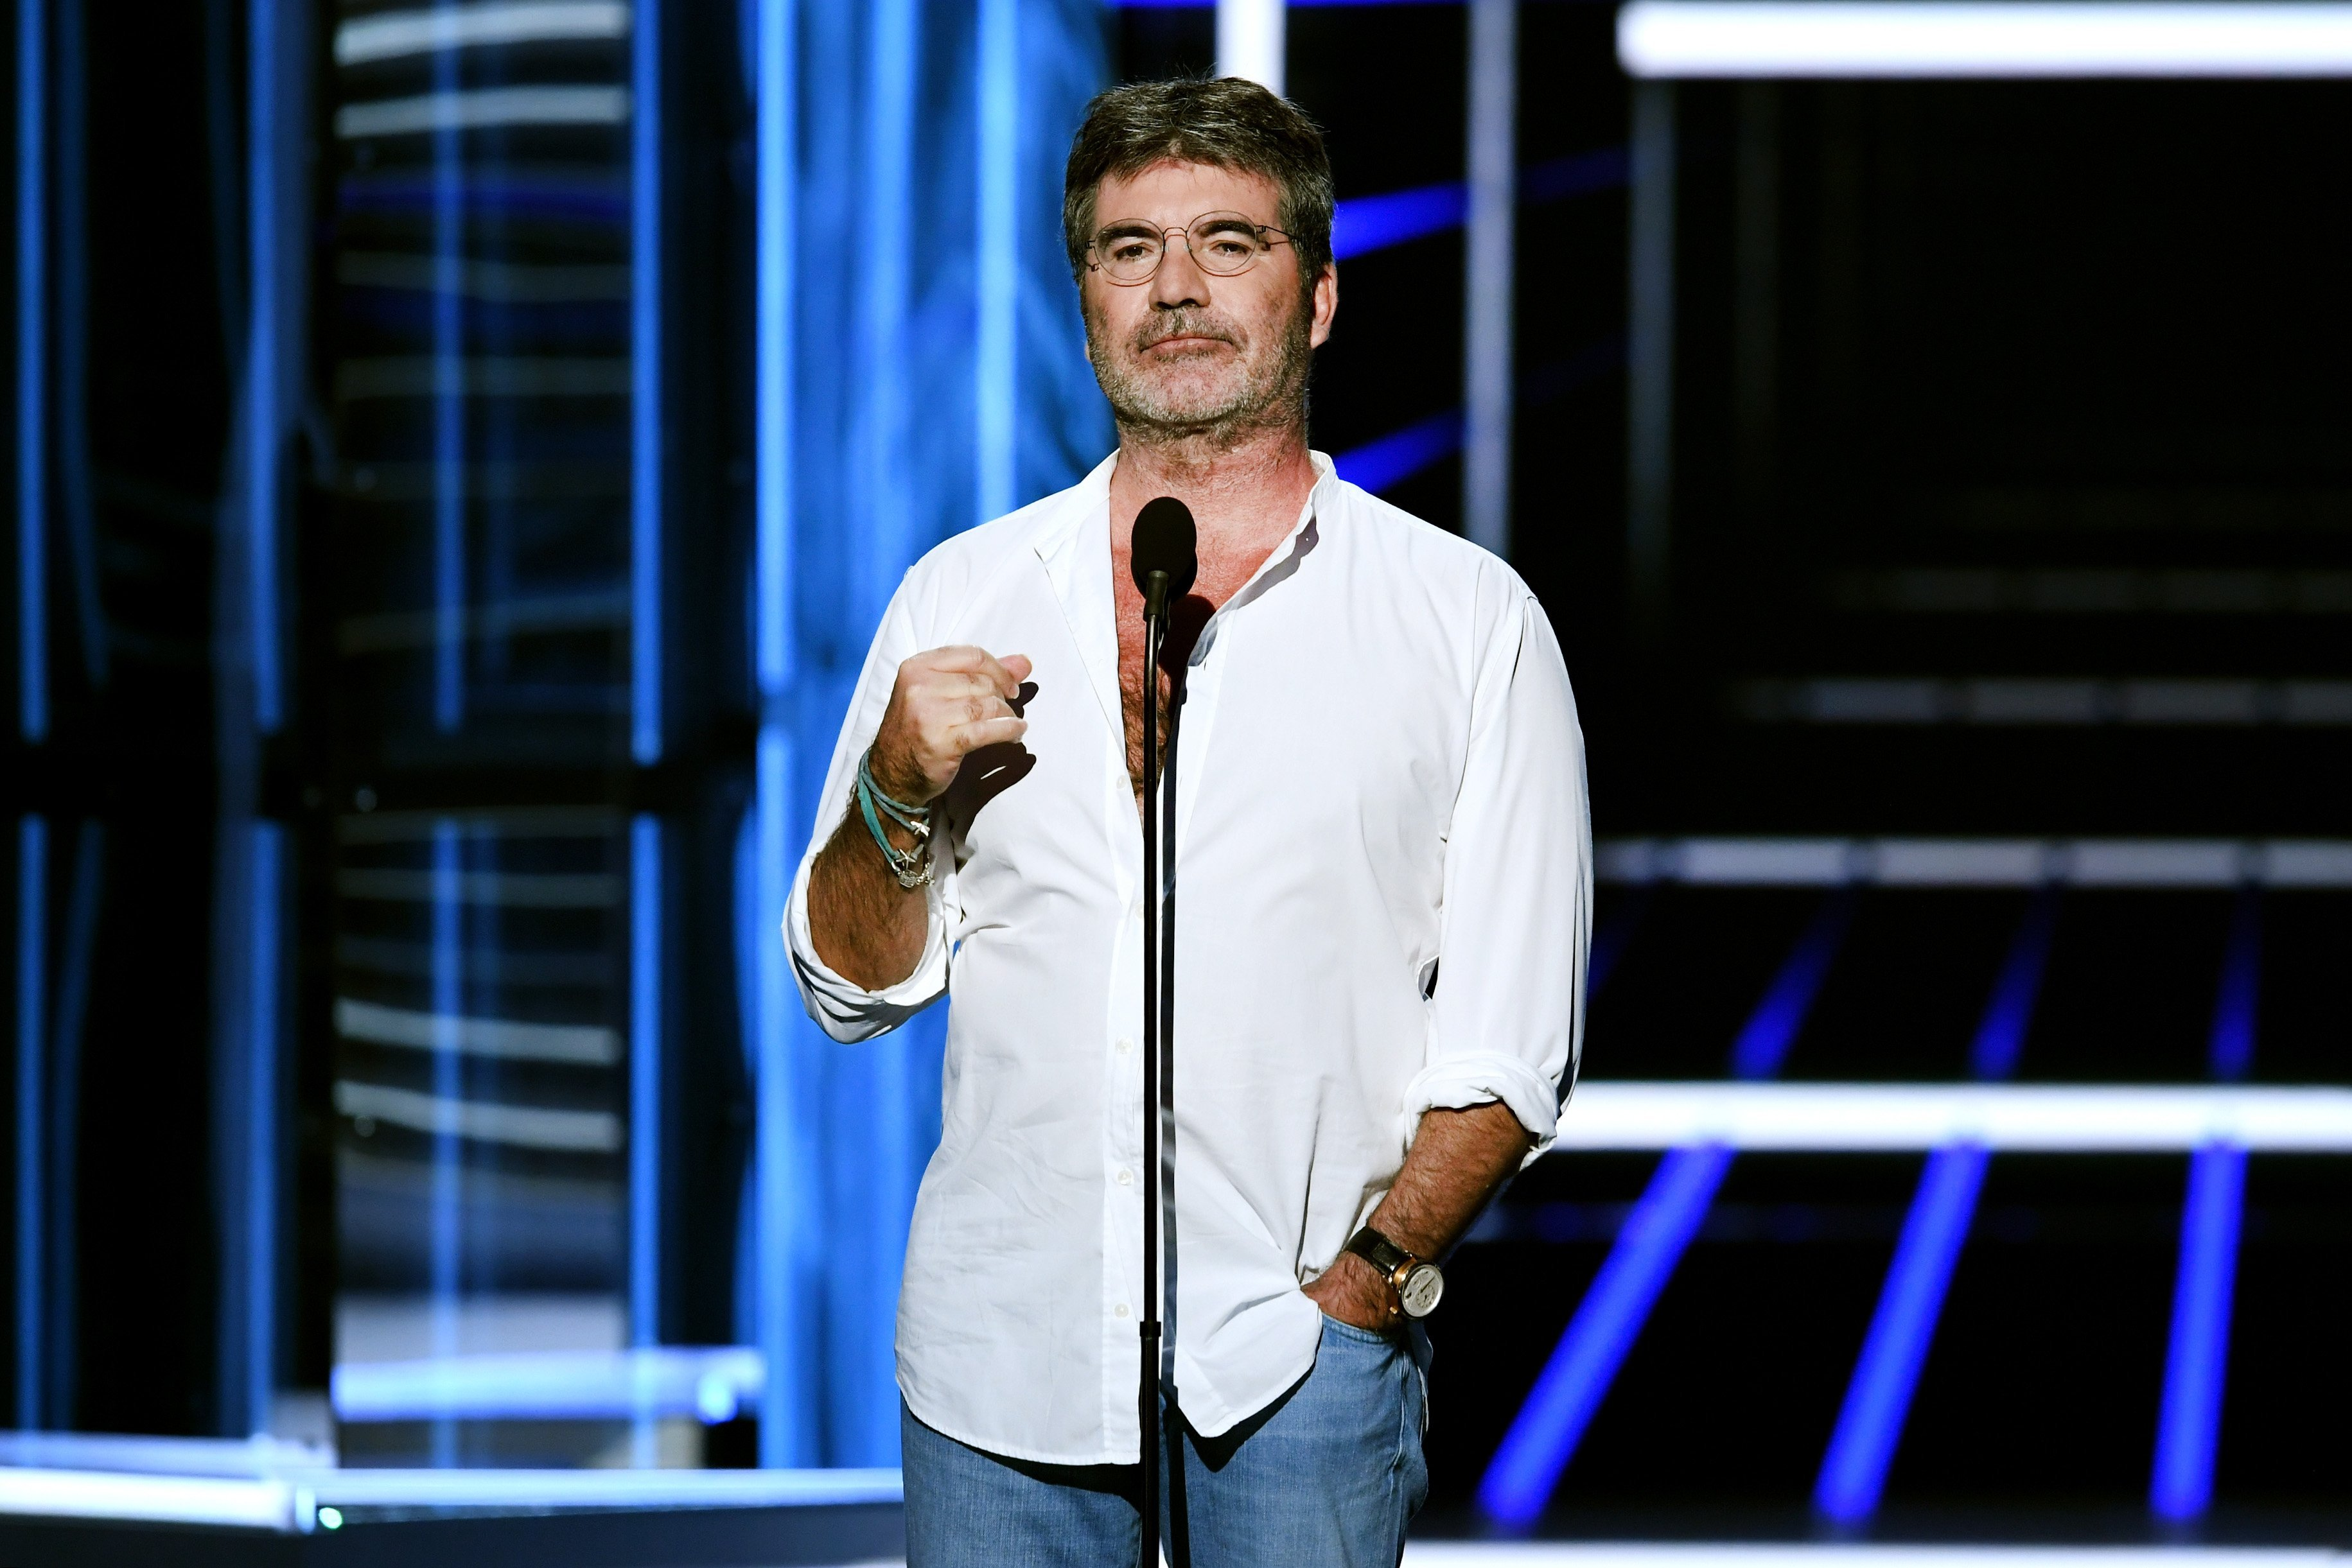 Simon Cowell speaks onstage during the 2018 Billboard Music Awards at MGM Grand Garden Arena on May 20, 2018 | Photo: GettyImages